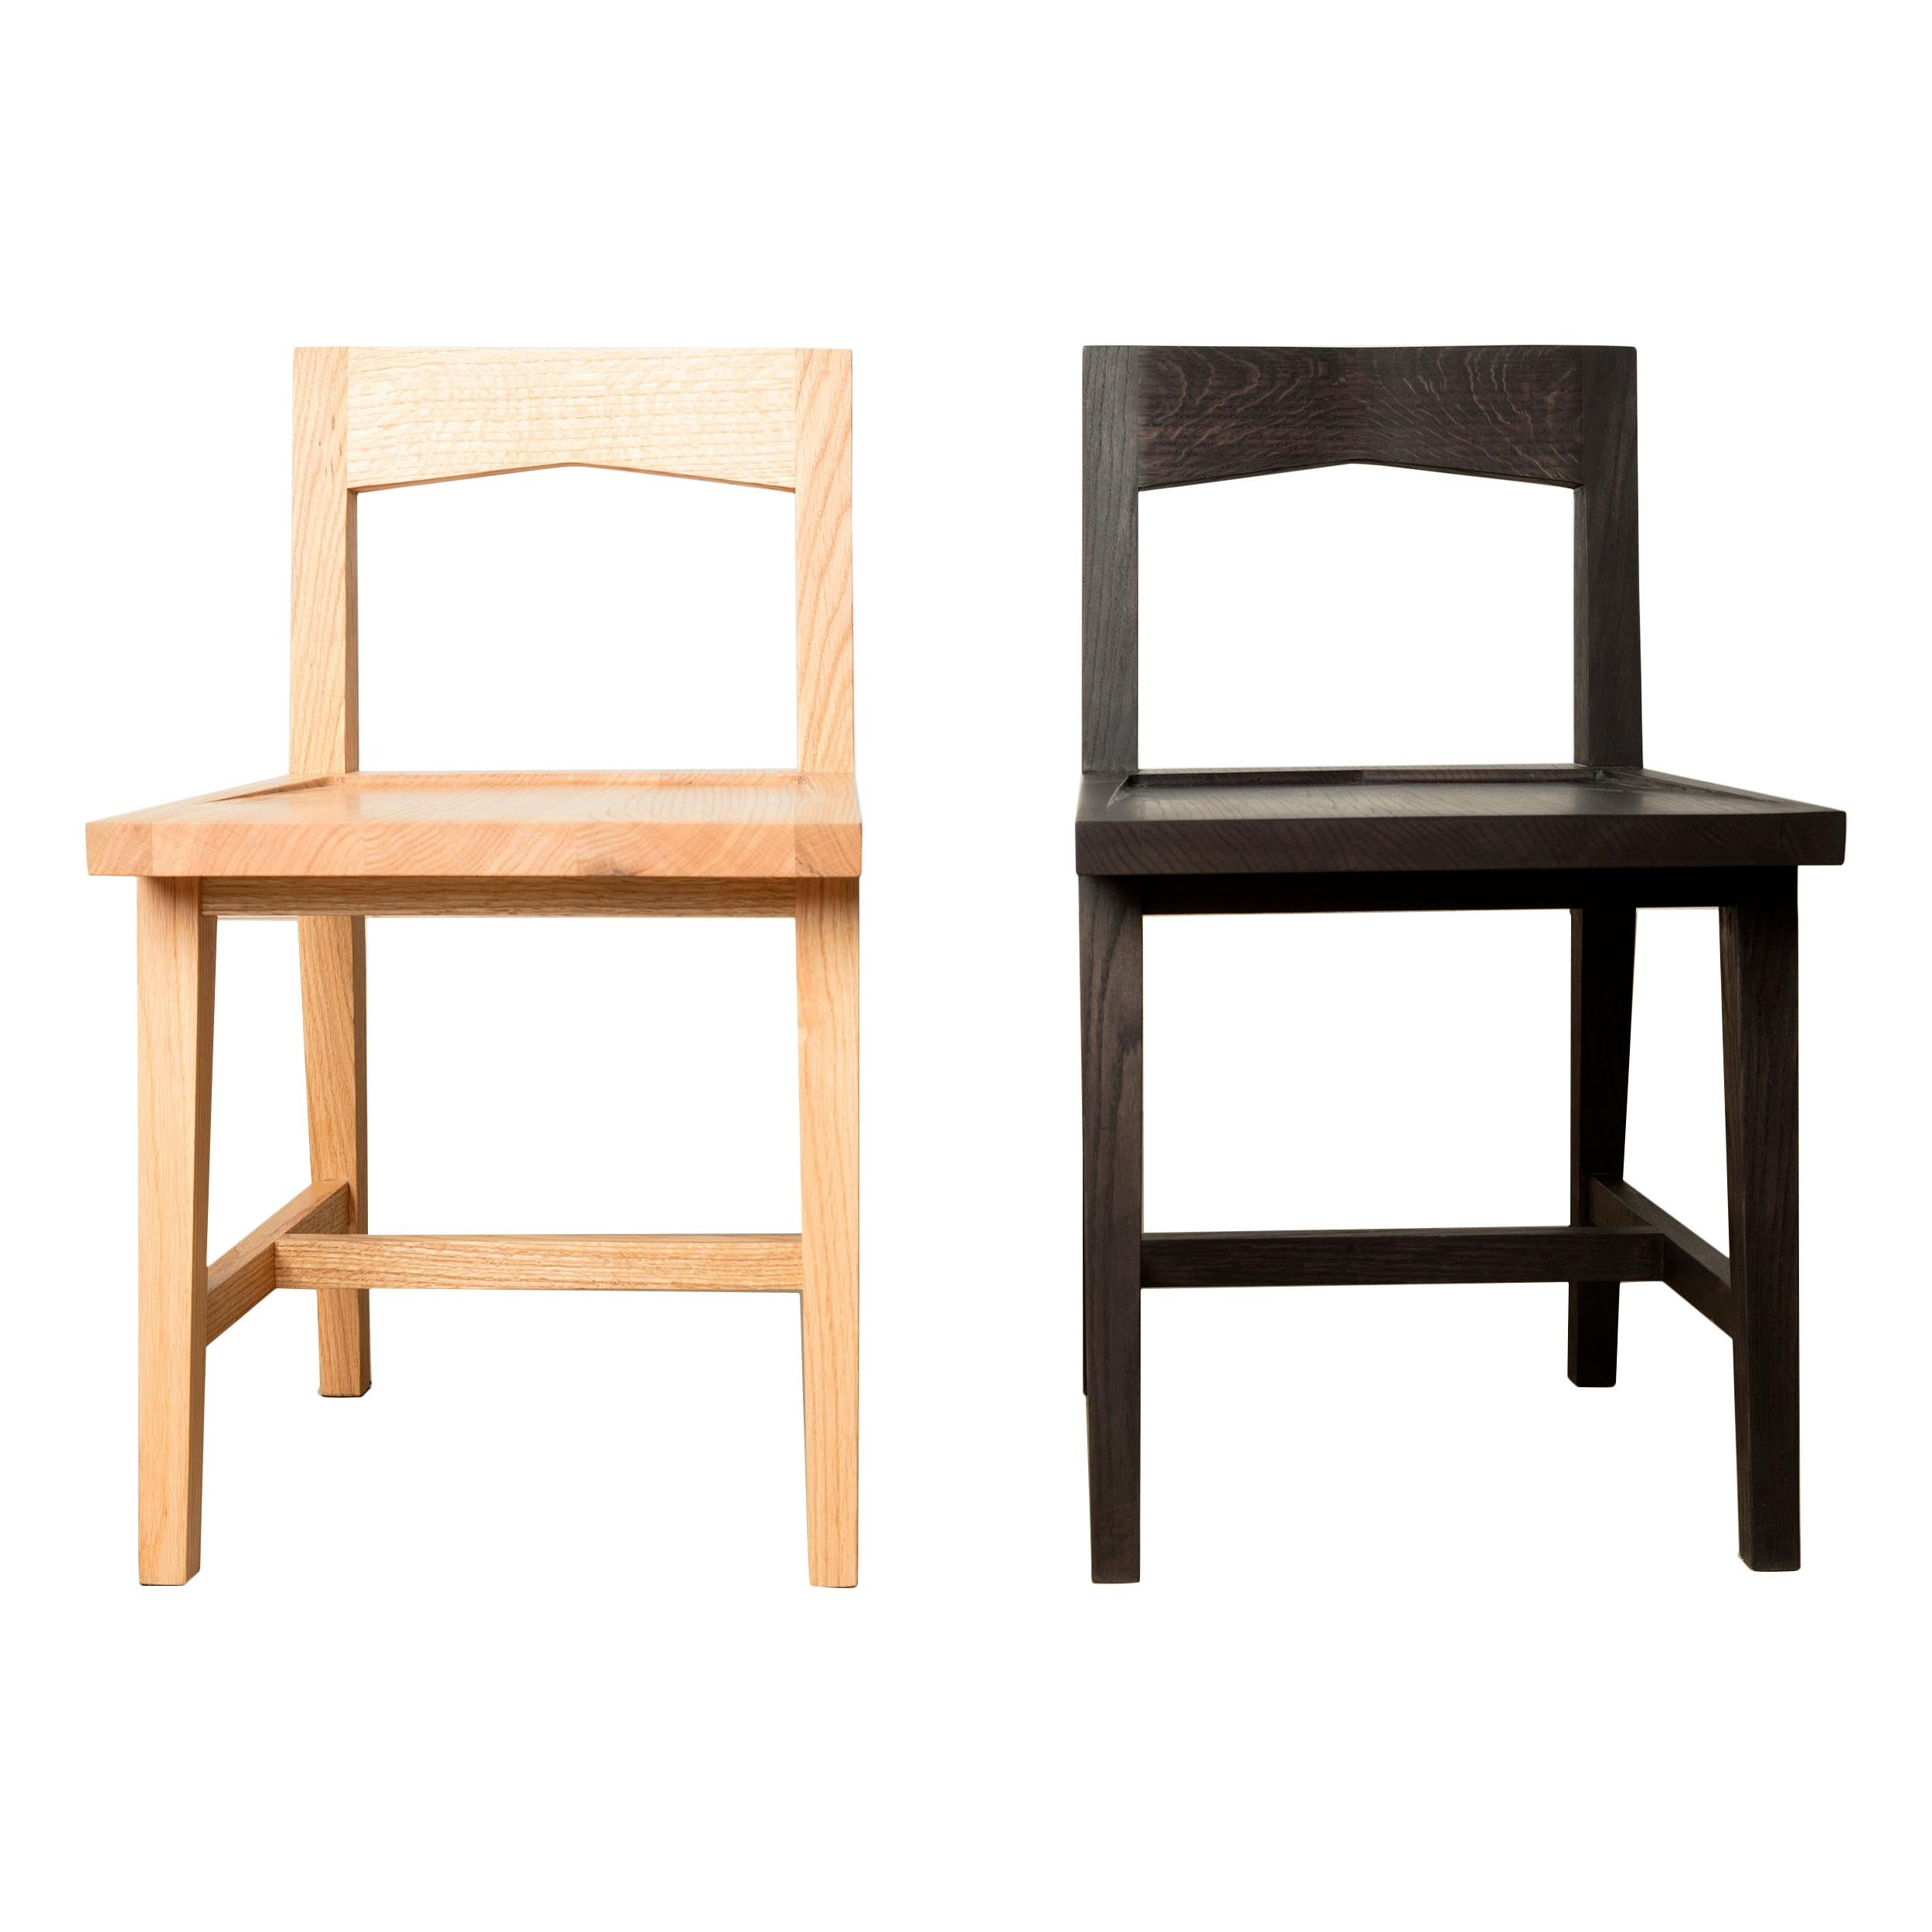 Modern Solid Oak Chair with Clear Oil Finish for Dining / Writing Height Seating